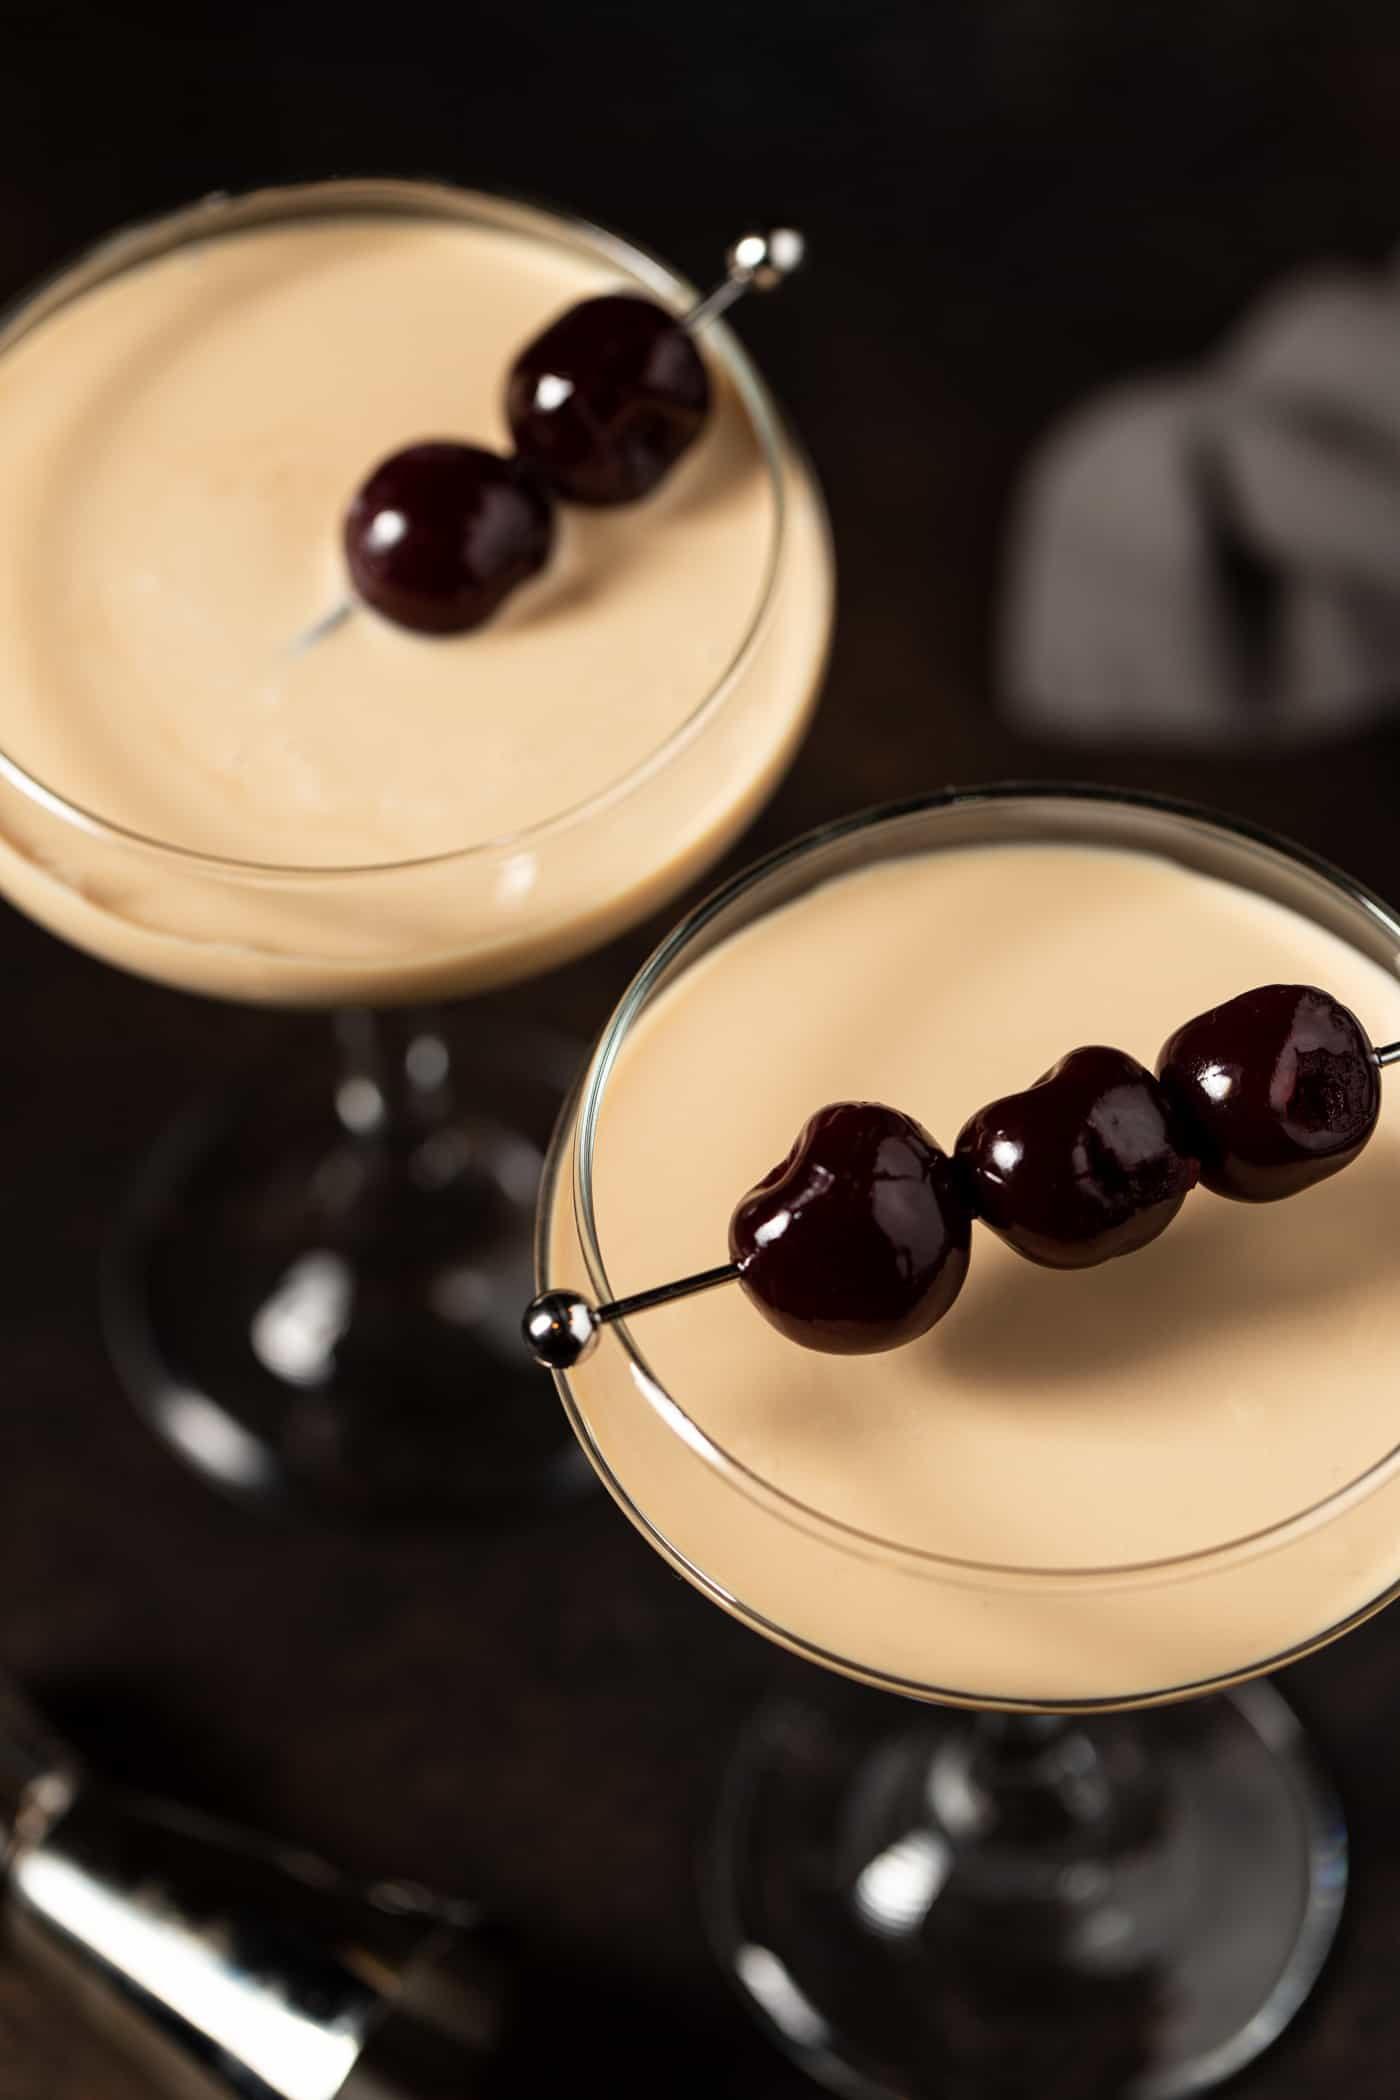 Top down image of dessert martinis garnished with luxardo cherries.